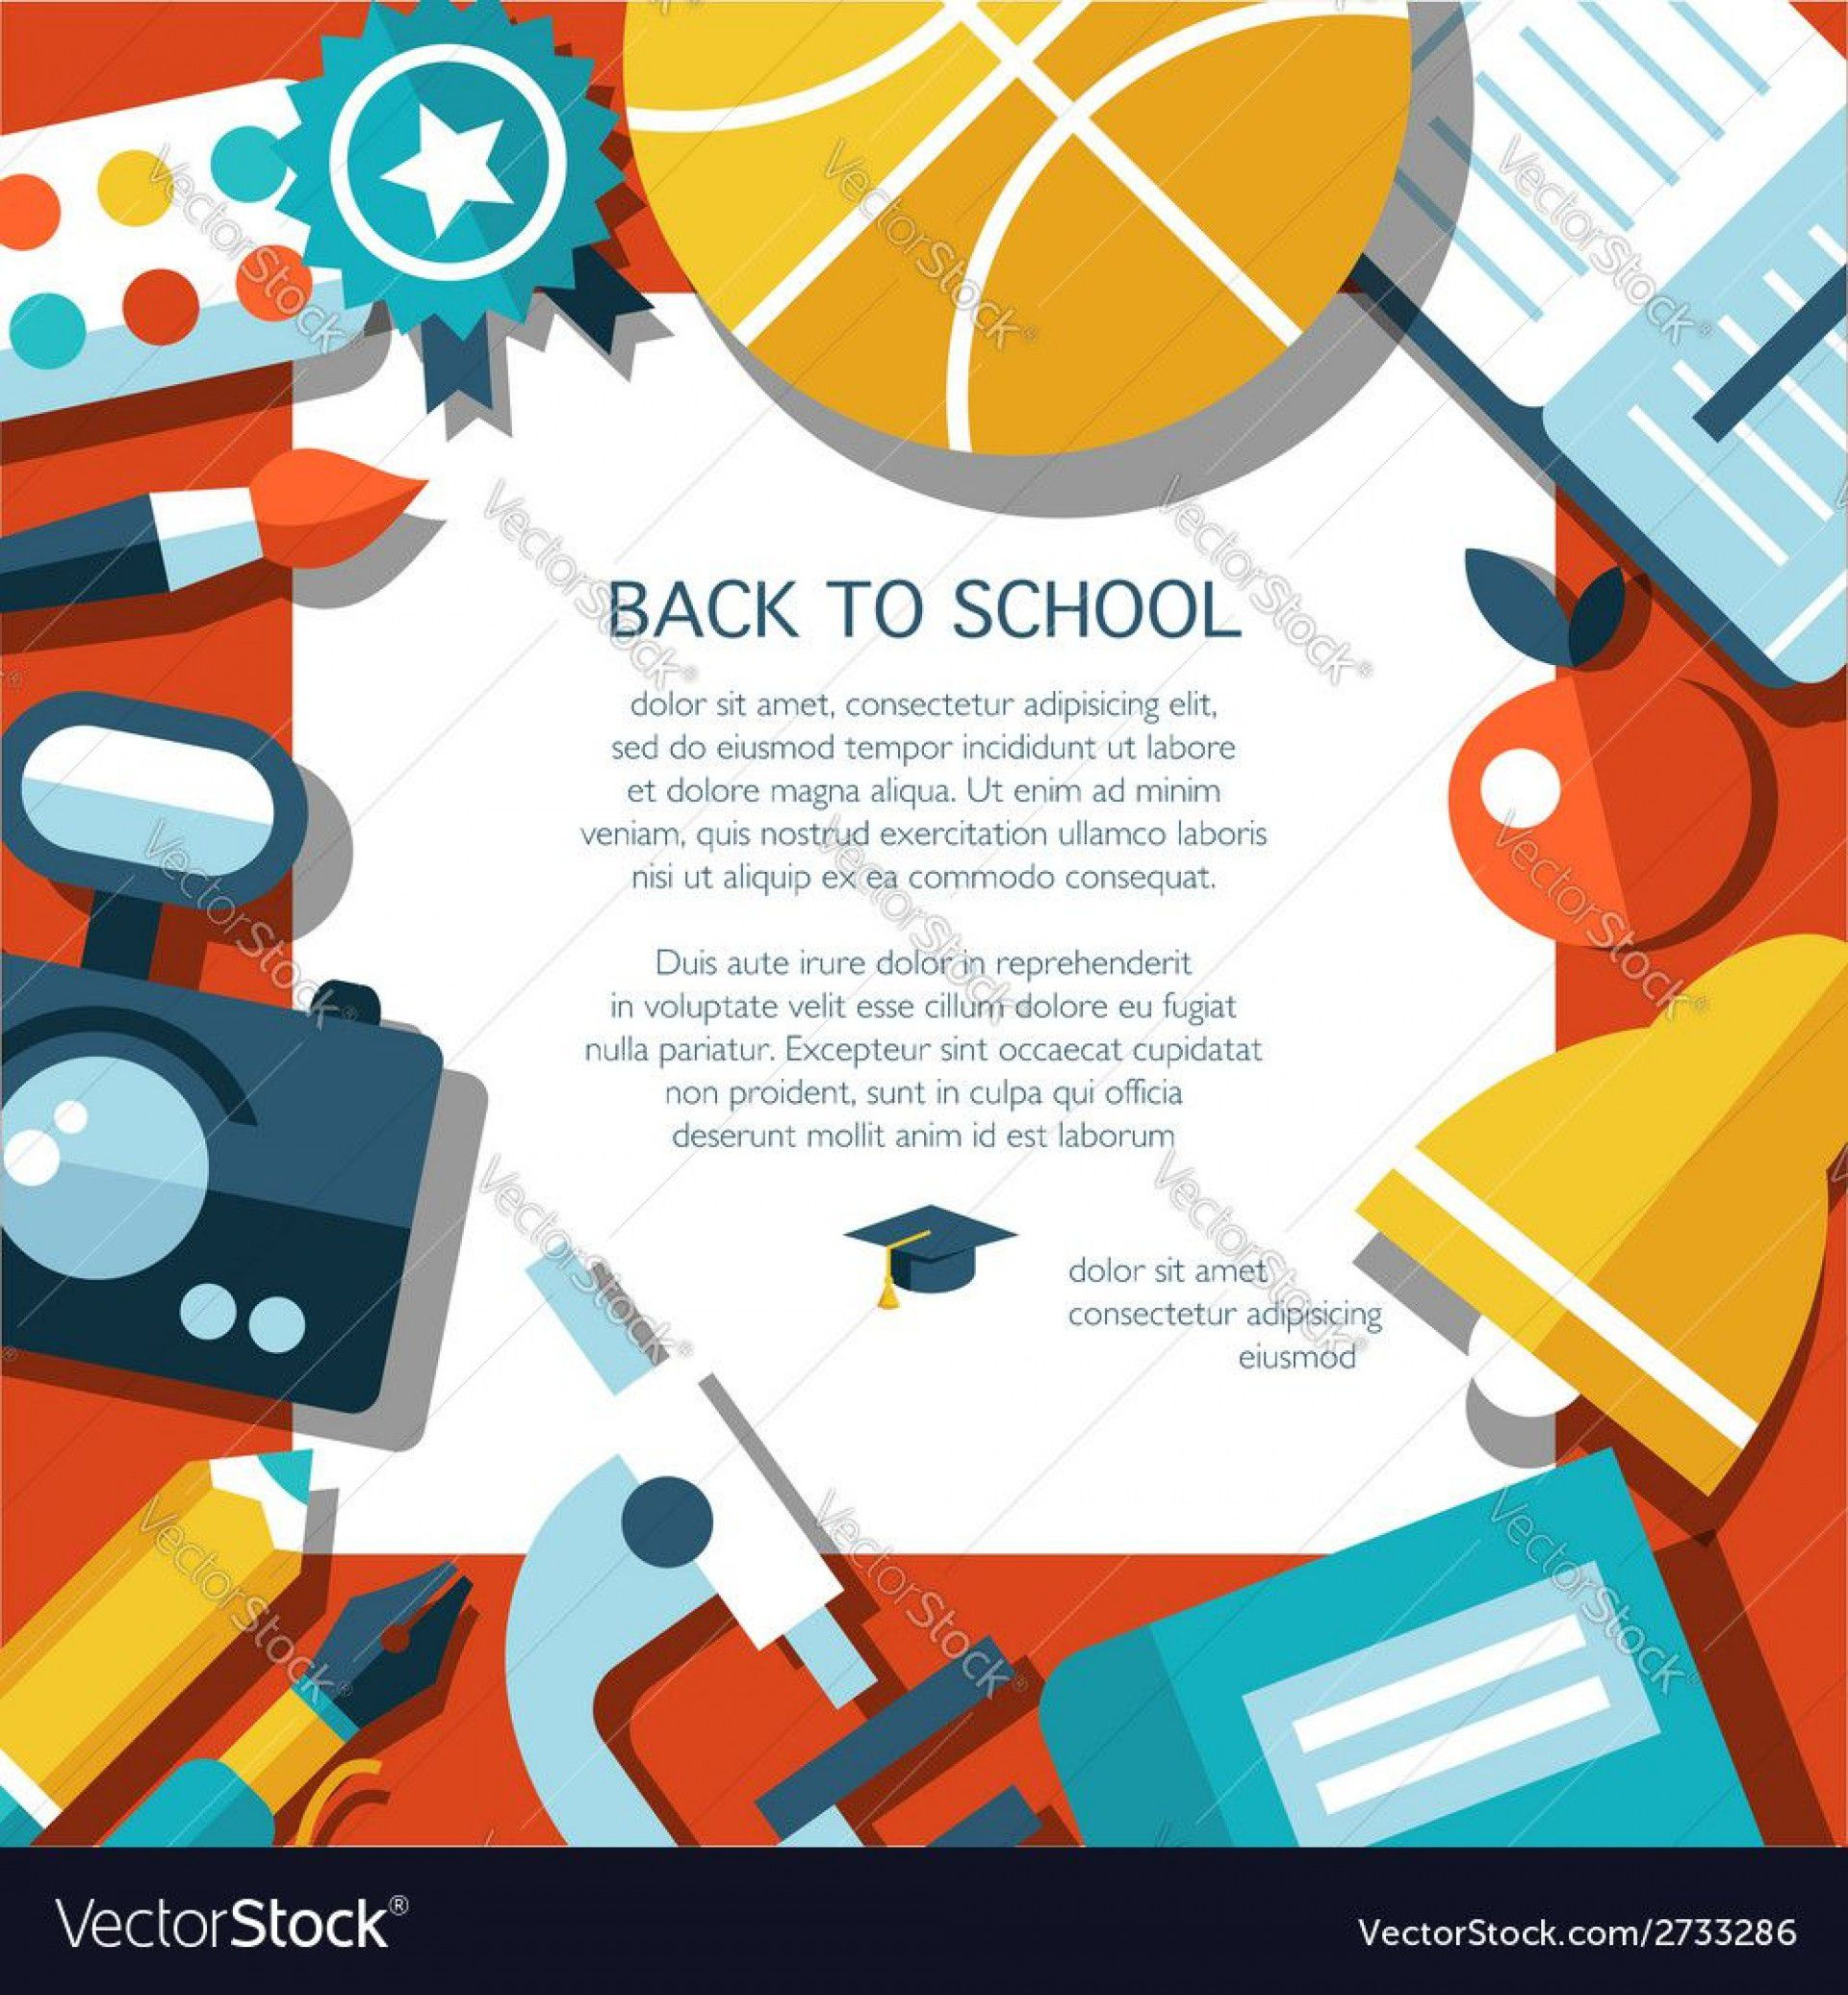 002 Impressive Free Back To School Flyer Template Word Picture Full